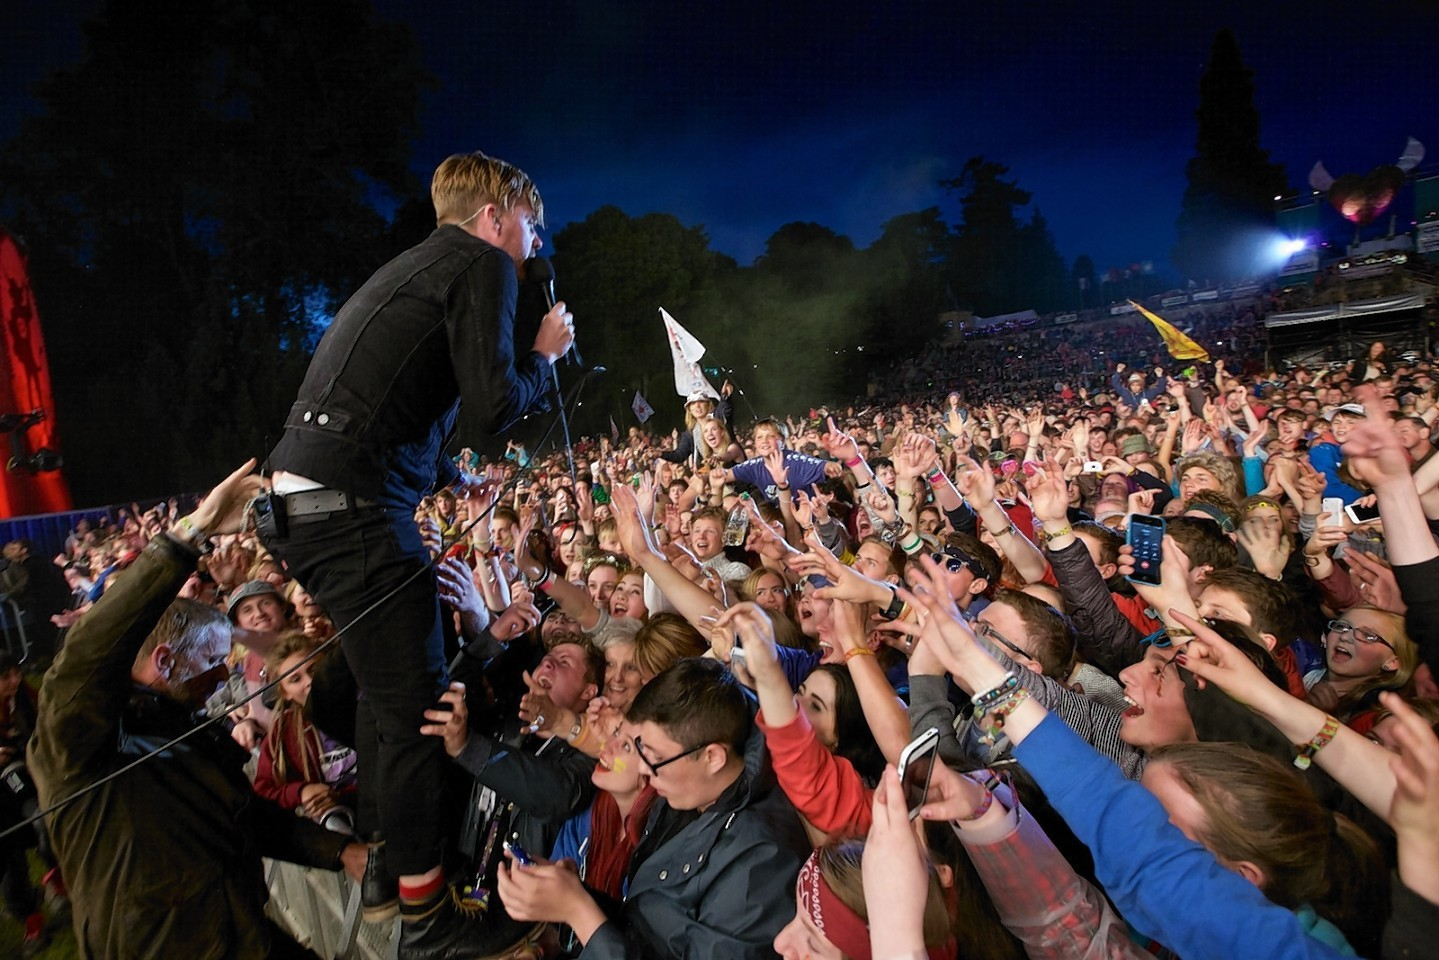 Kaiser Chiefs frontman, Ricky Wilson, gets close with the fans at Belladrum